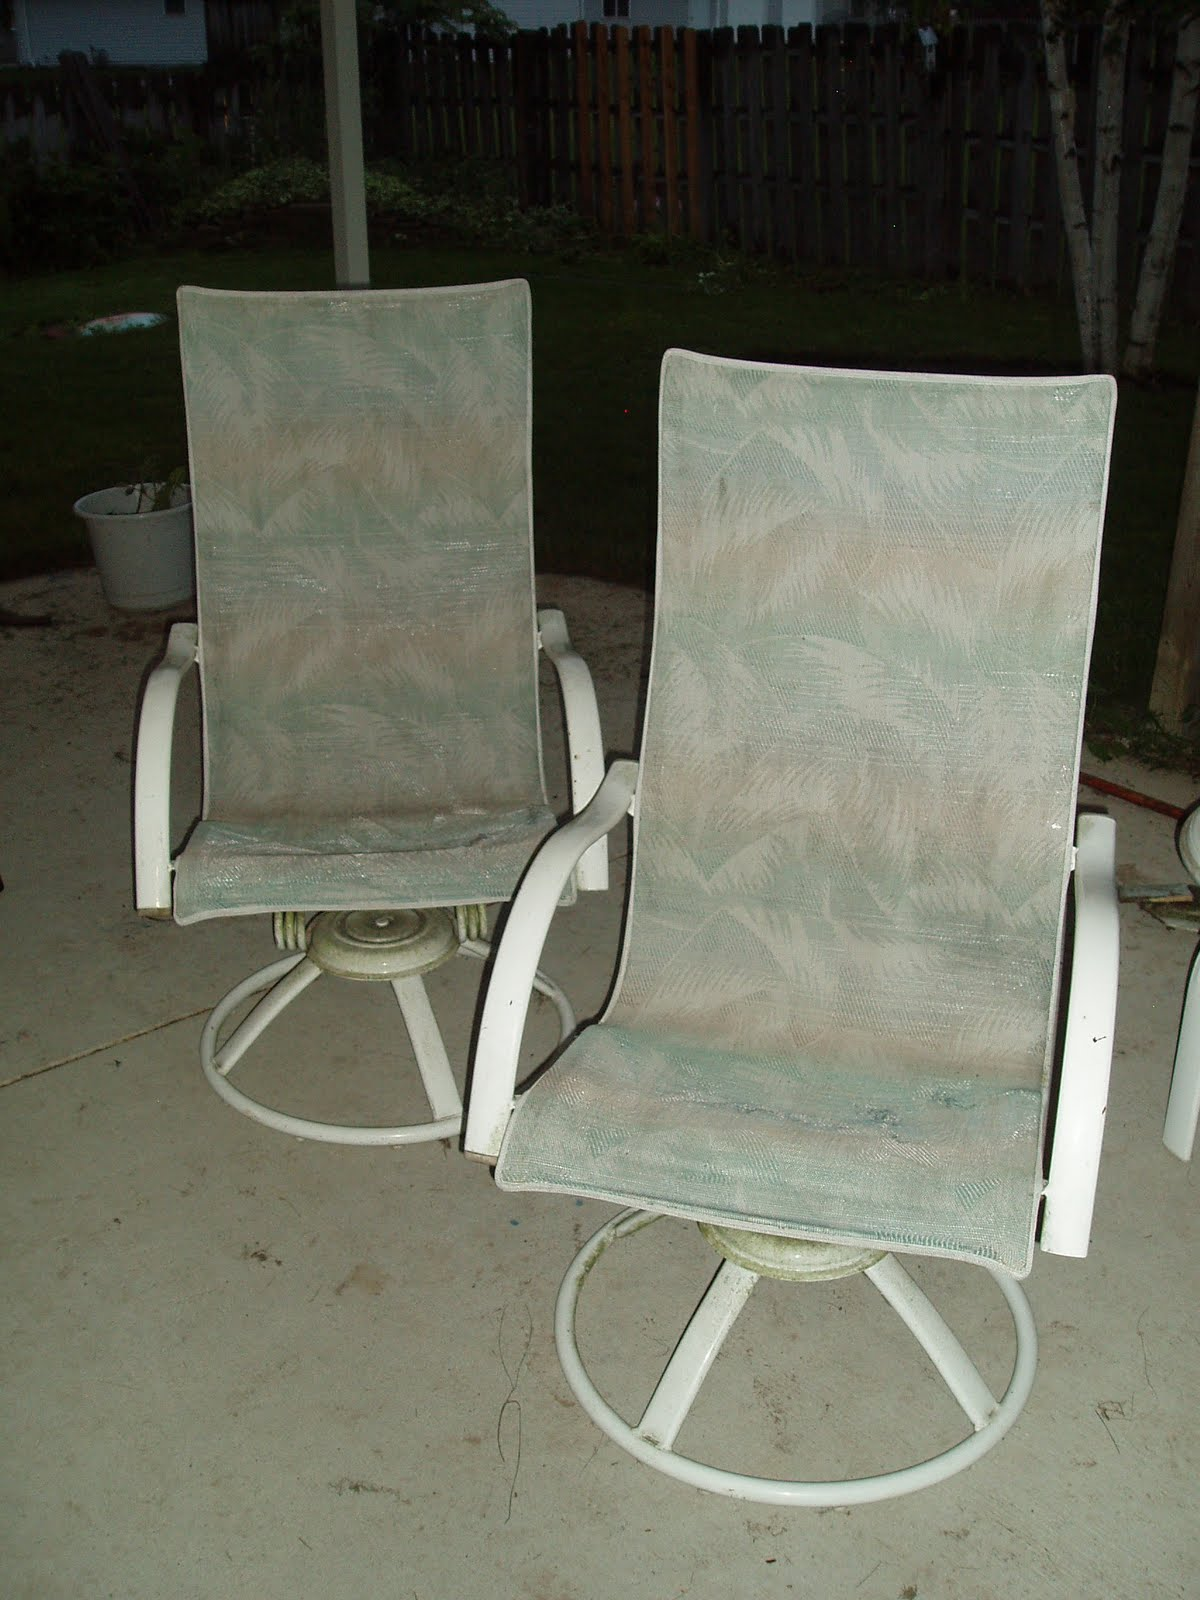 Recovering Lawn Chairs Bistro Table And 2 Garden Sew What 39s Happening Part 1